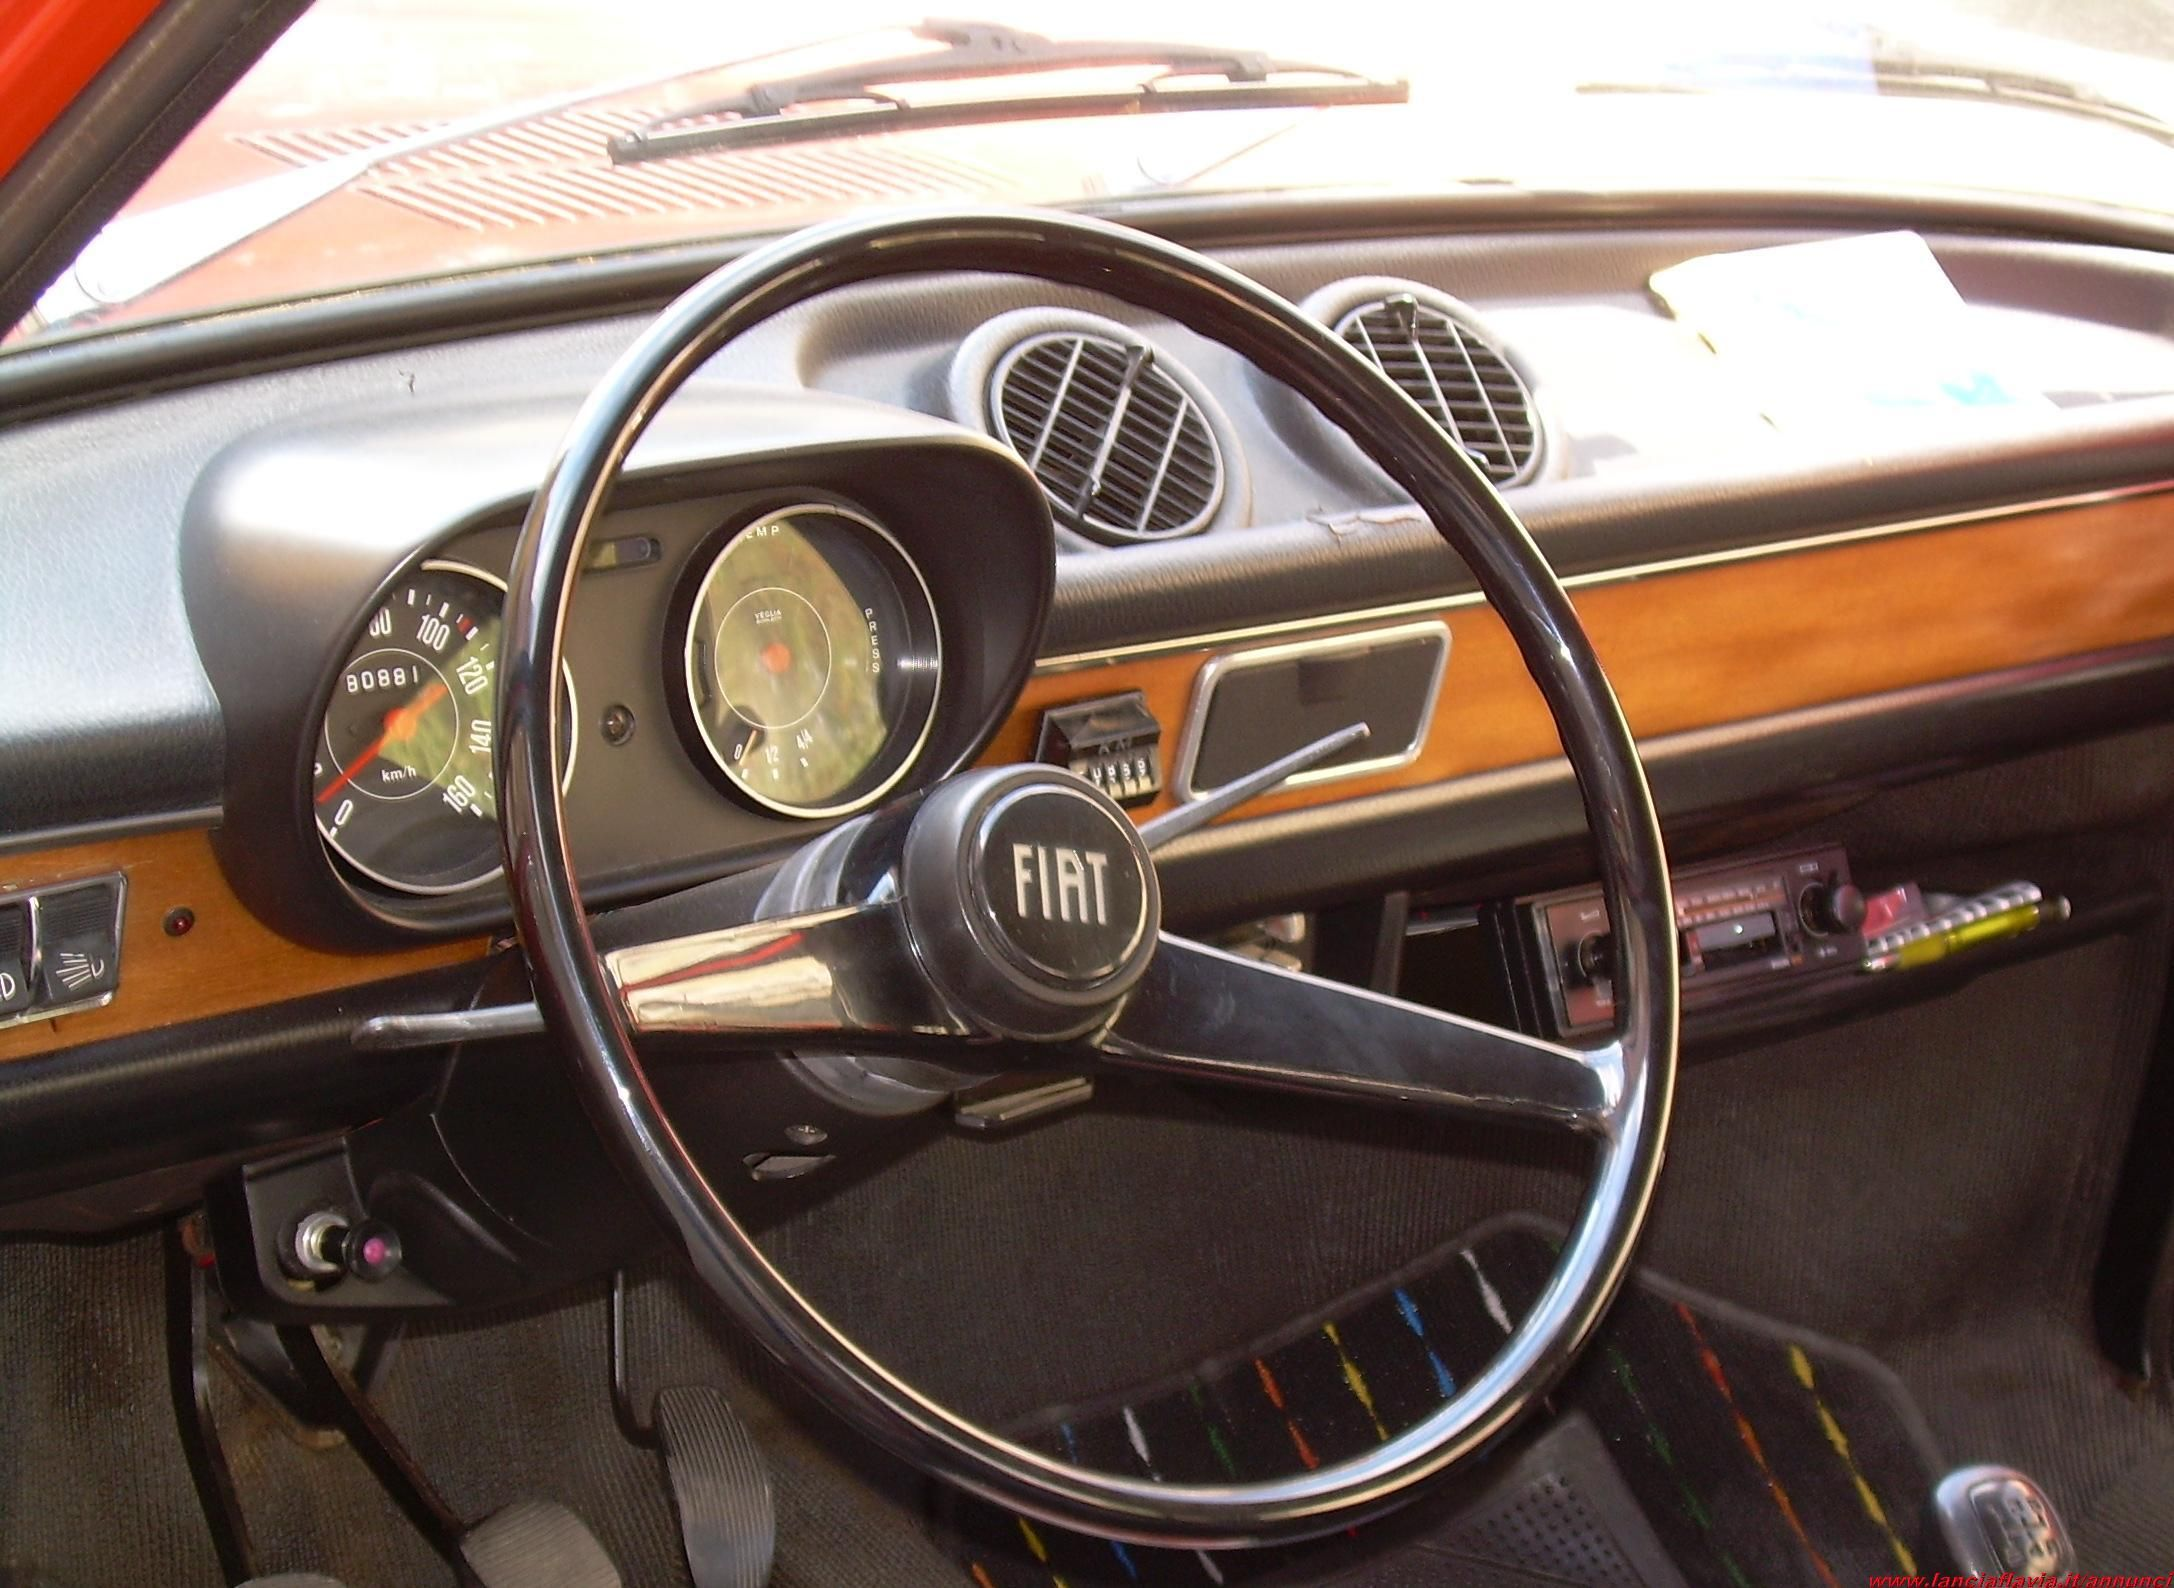 Car interior maintenance - Fiat 127 1972 Maintenance Of Old Vehicles The Material For New Cogs Casters Car Interiorsfiat